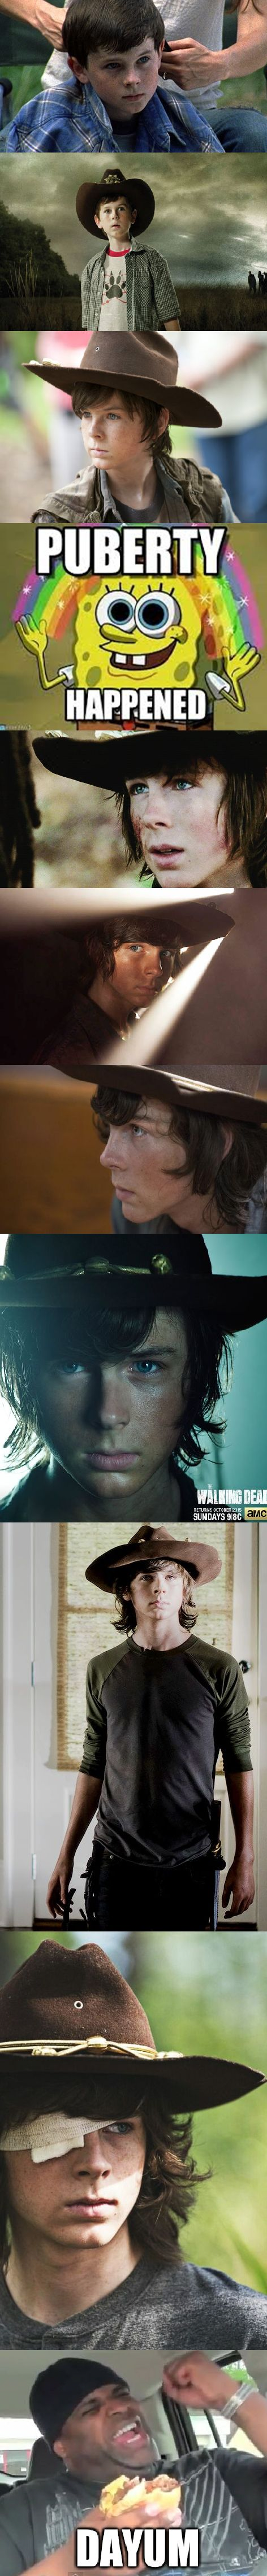 CARL GRIMES OVER THE SEASONS.... OH MY DAYUM!!!!